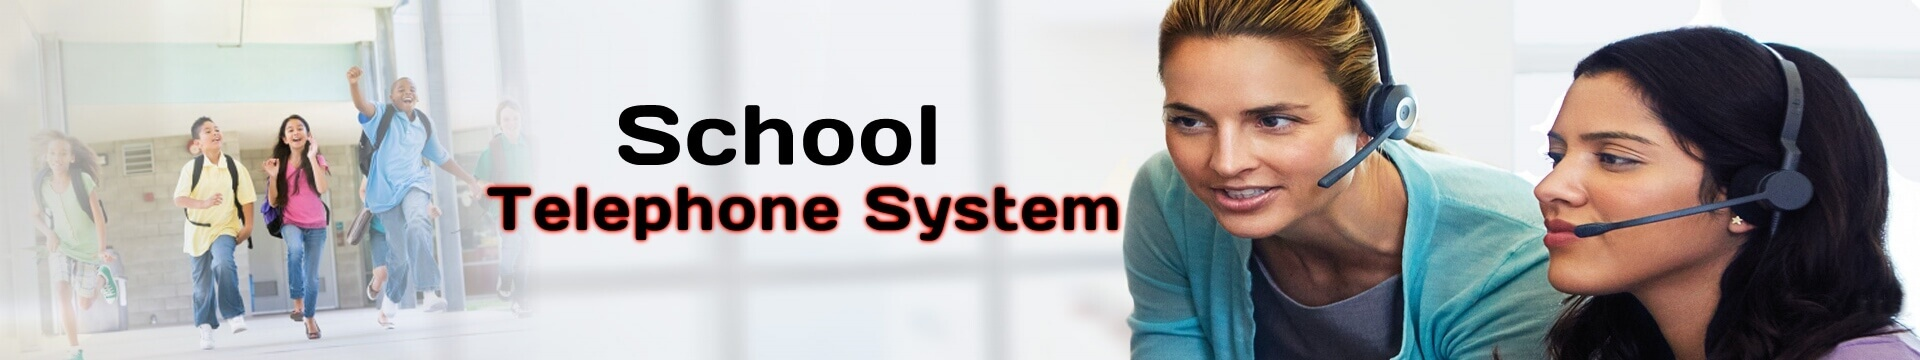 School Telephone System Kuwait